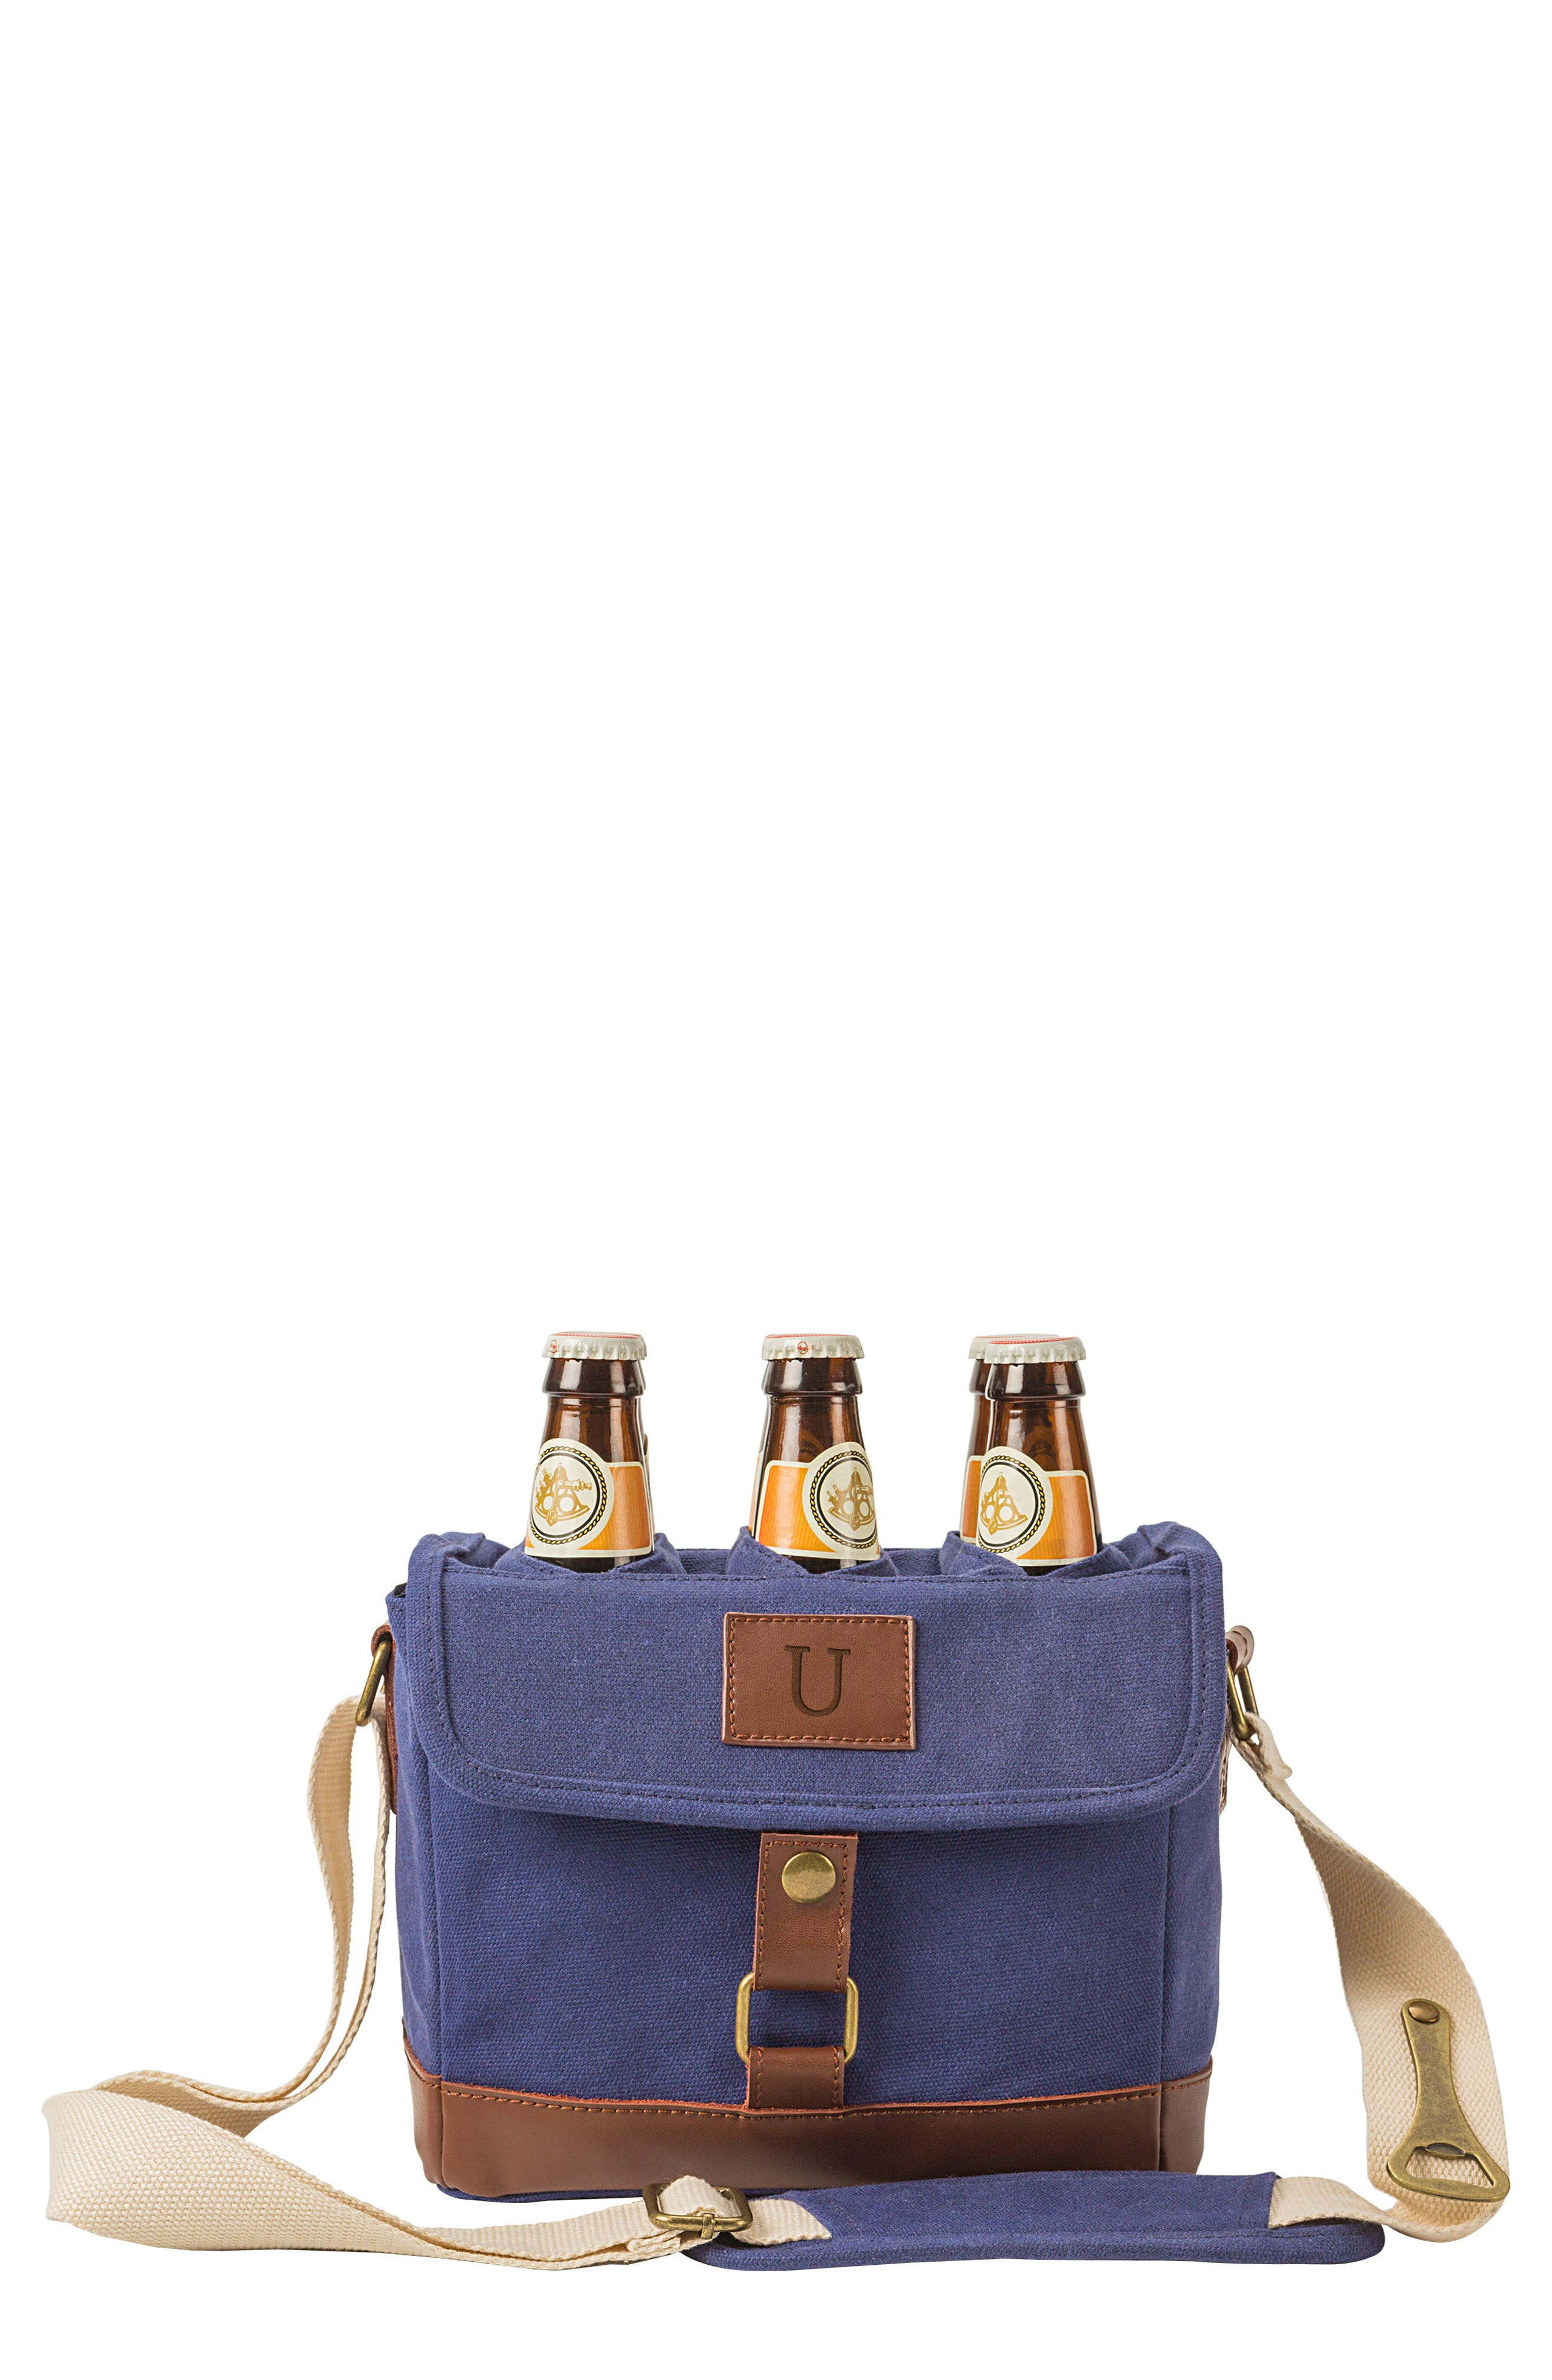 Cathy's Concepts Monogram 6-Bottle Beer Cooler